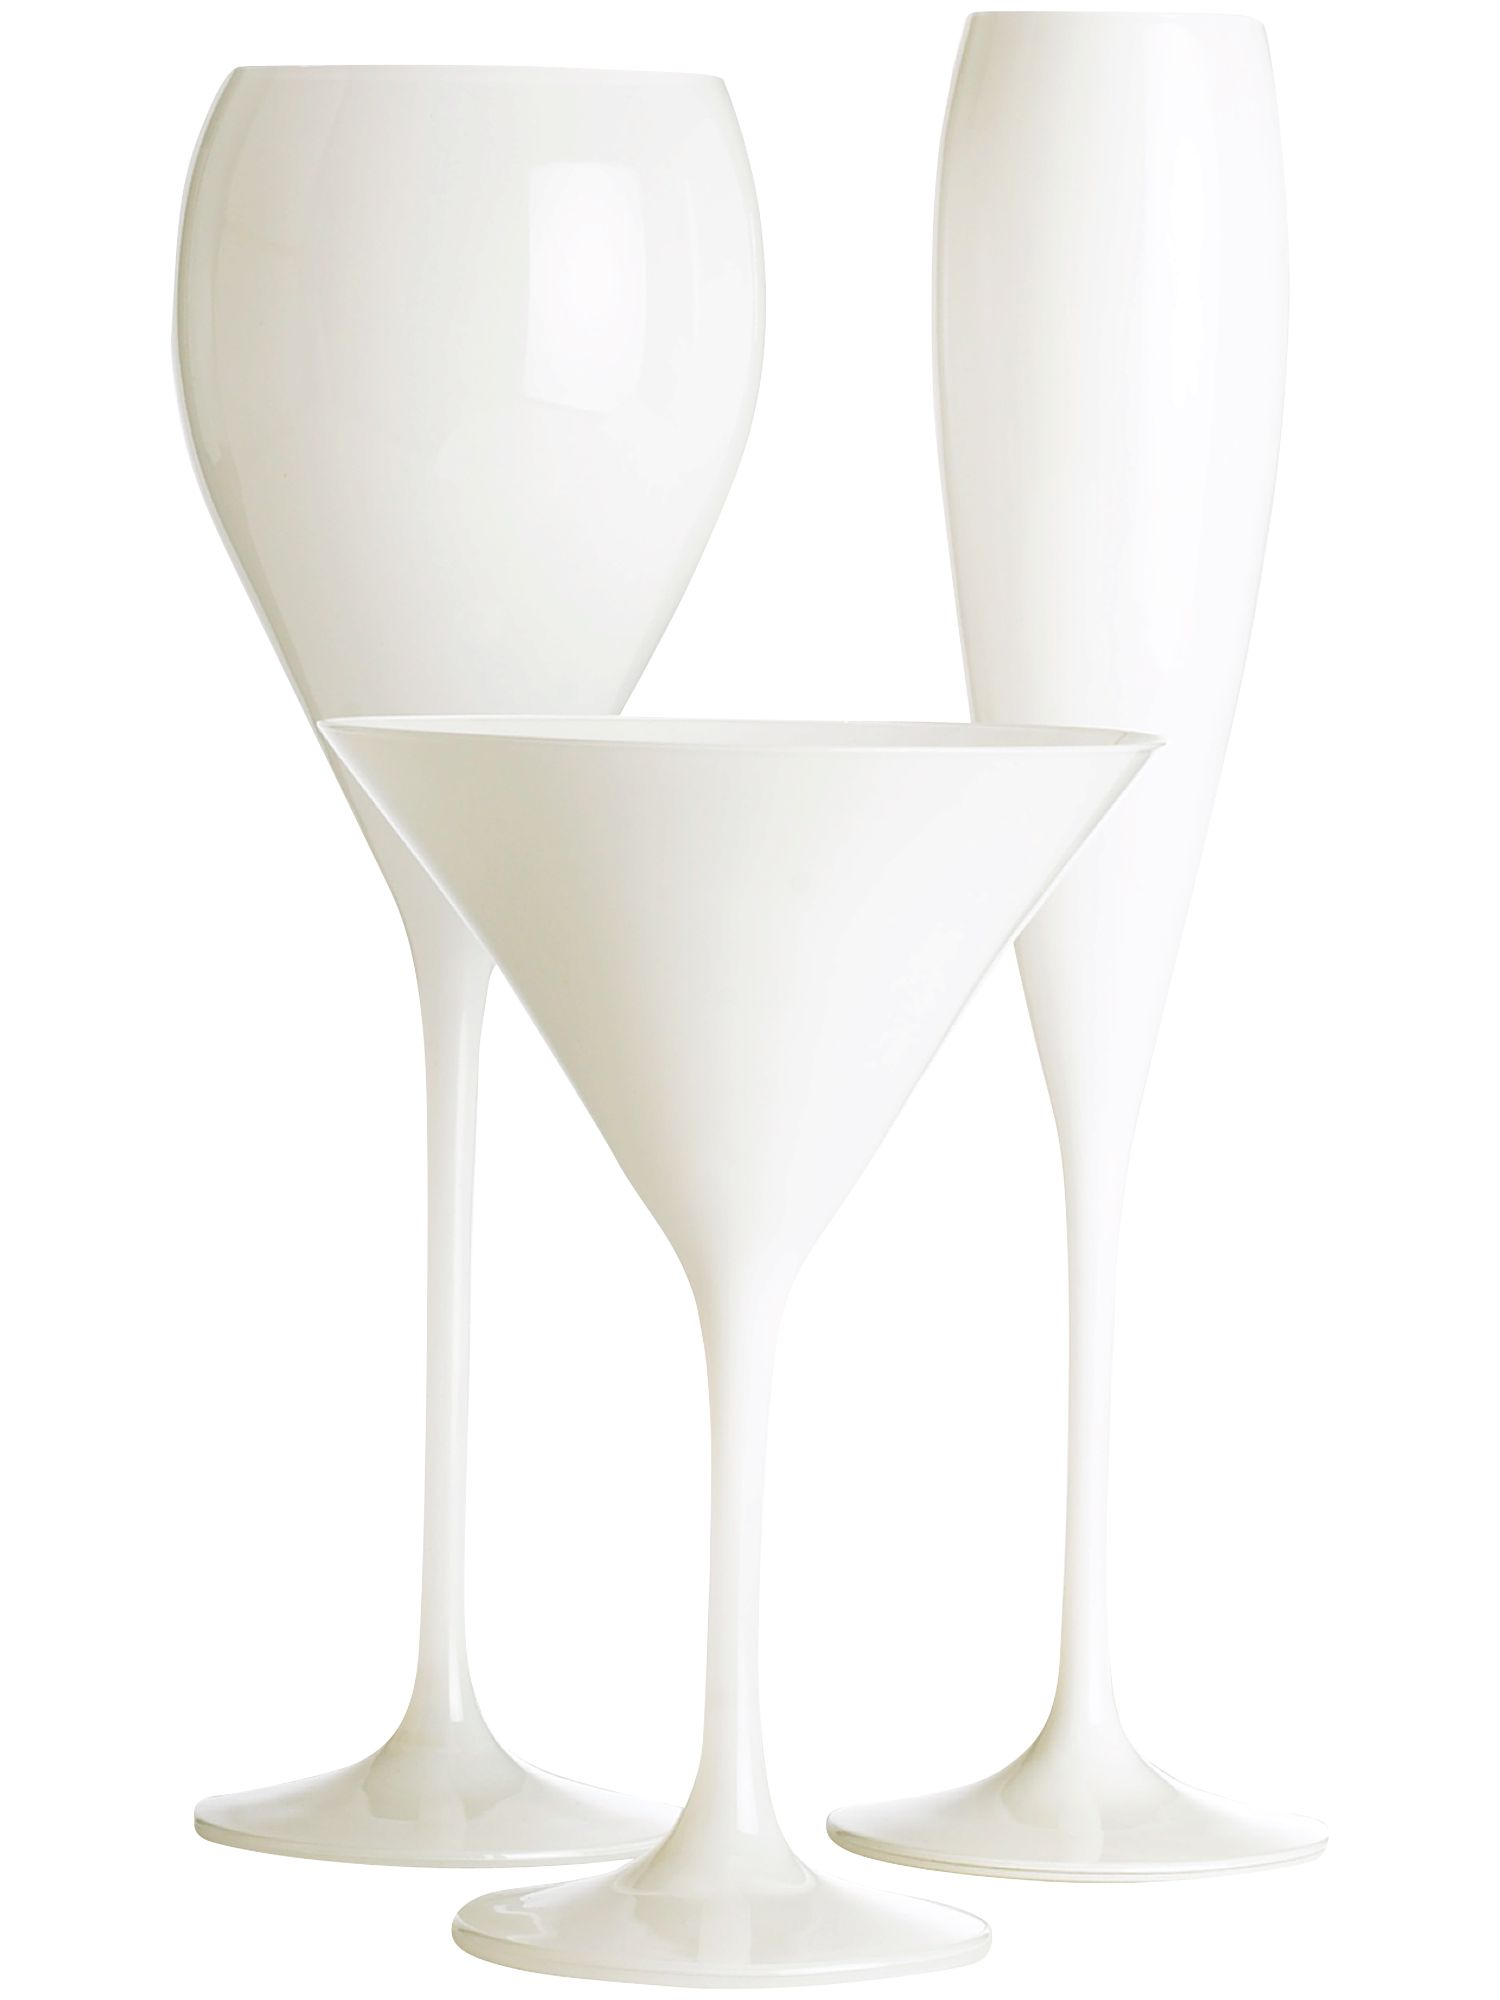 Linea Olga wine glass